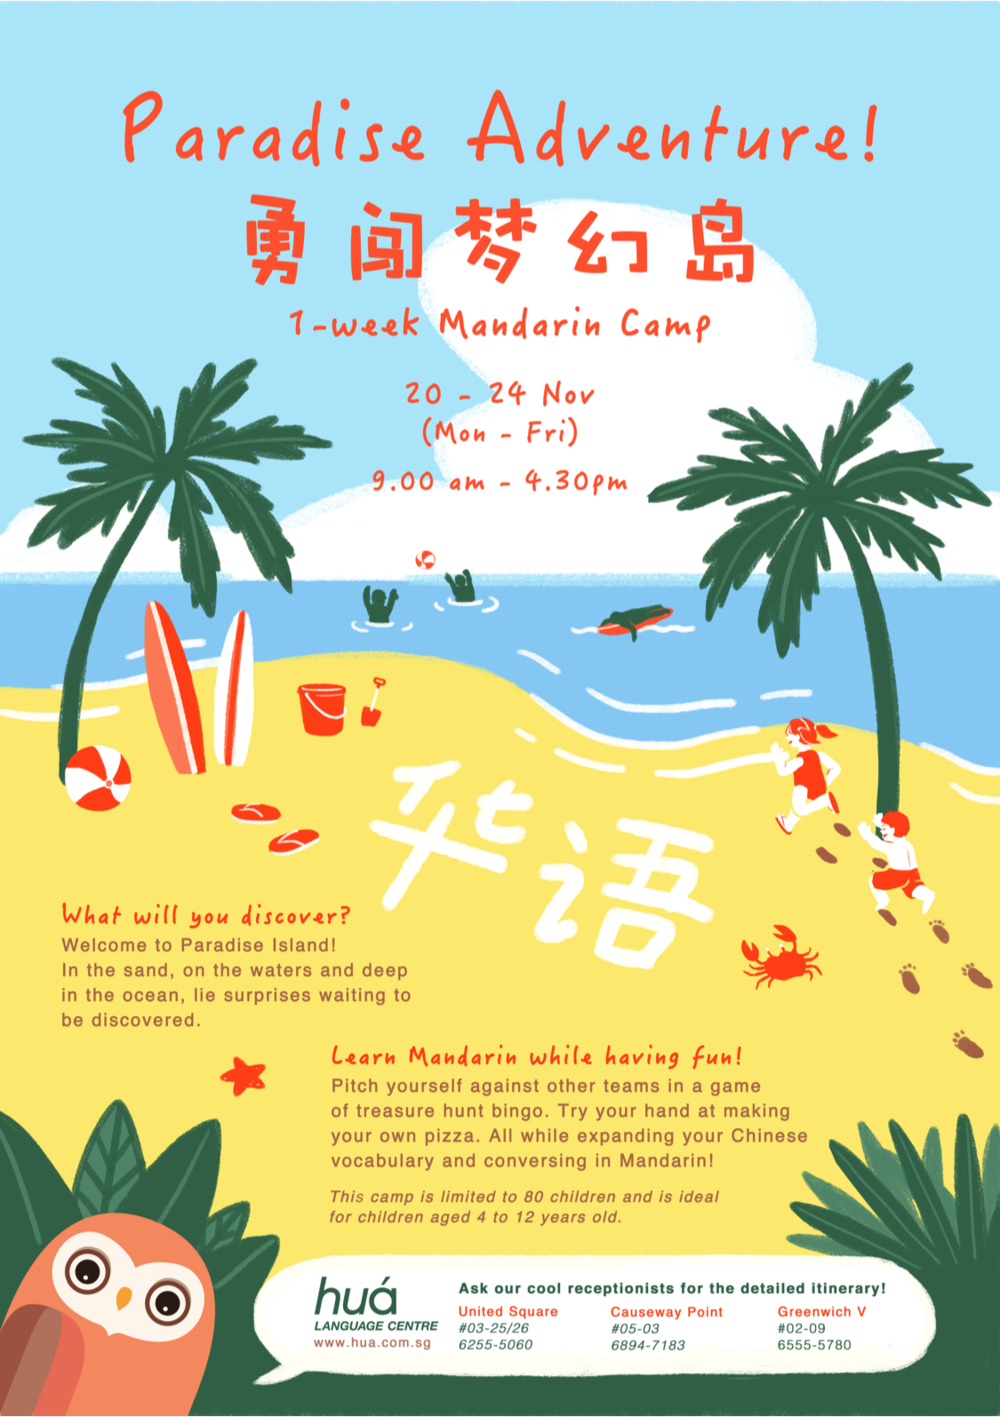 hua_language_mandarin_camp_paradise_adventure.png